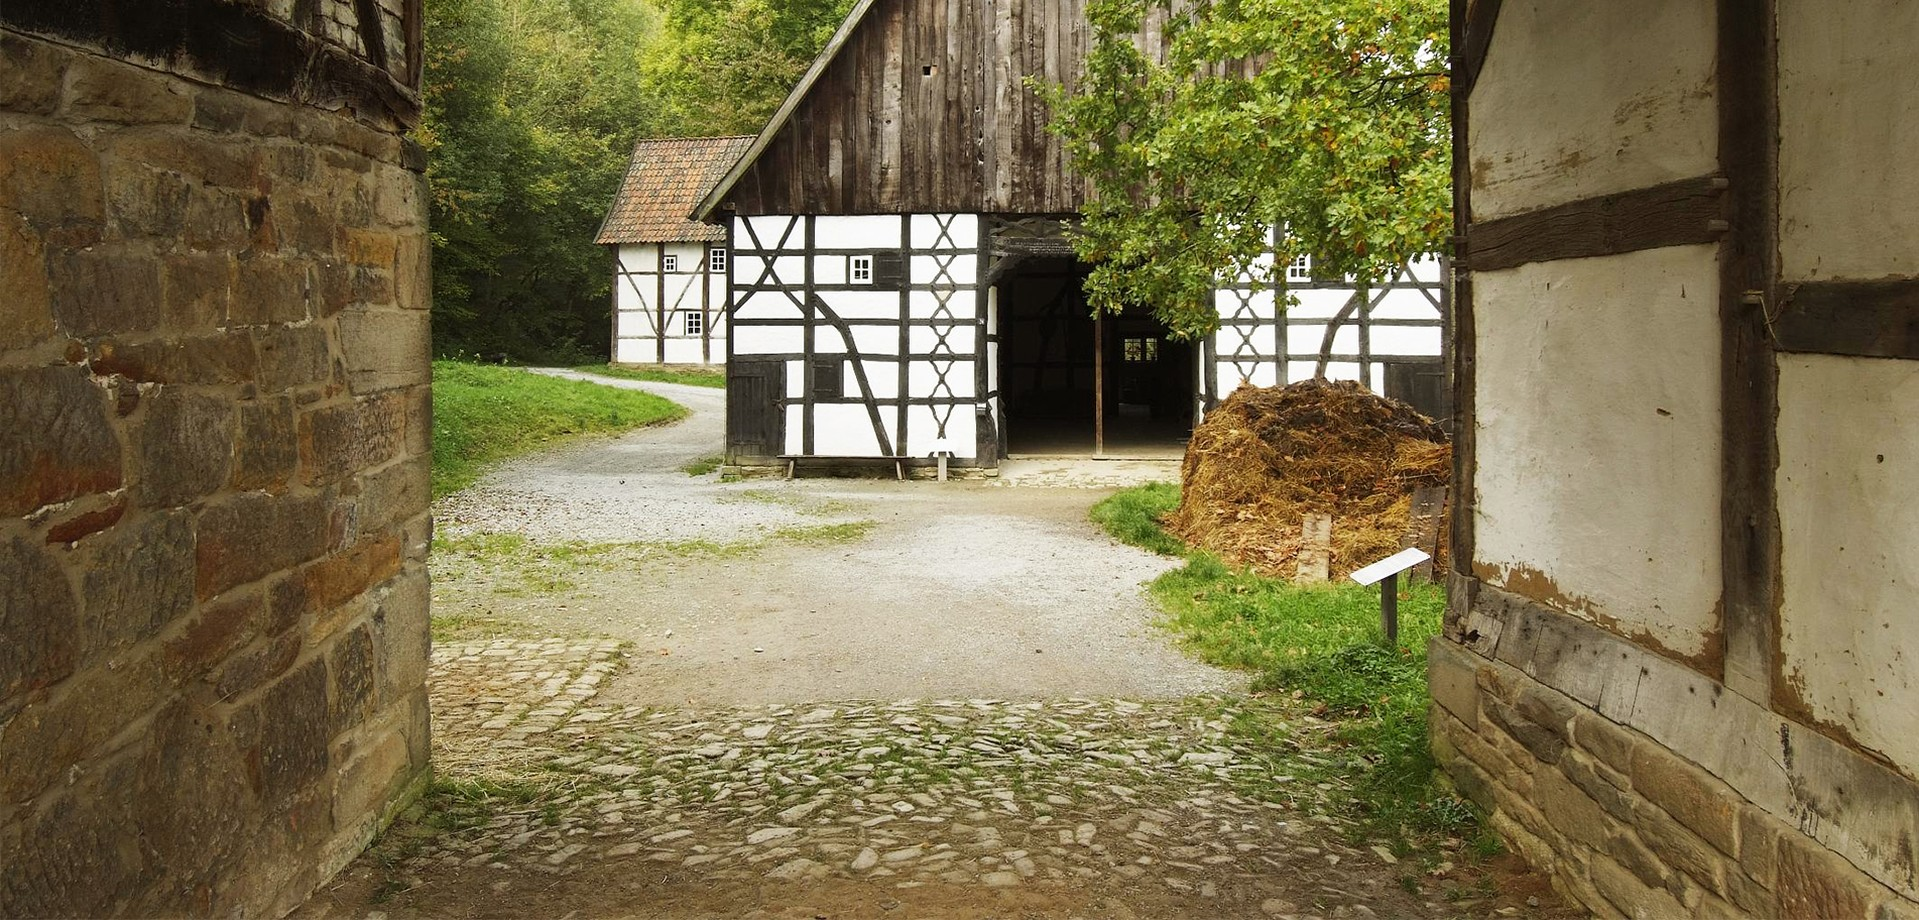 A passage to a farmyard. Straight ahead is a half-timbered house. The passage and the house are a picture of the Gräftenhof.